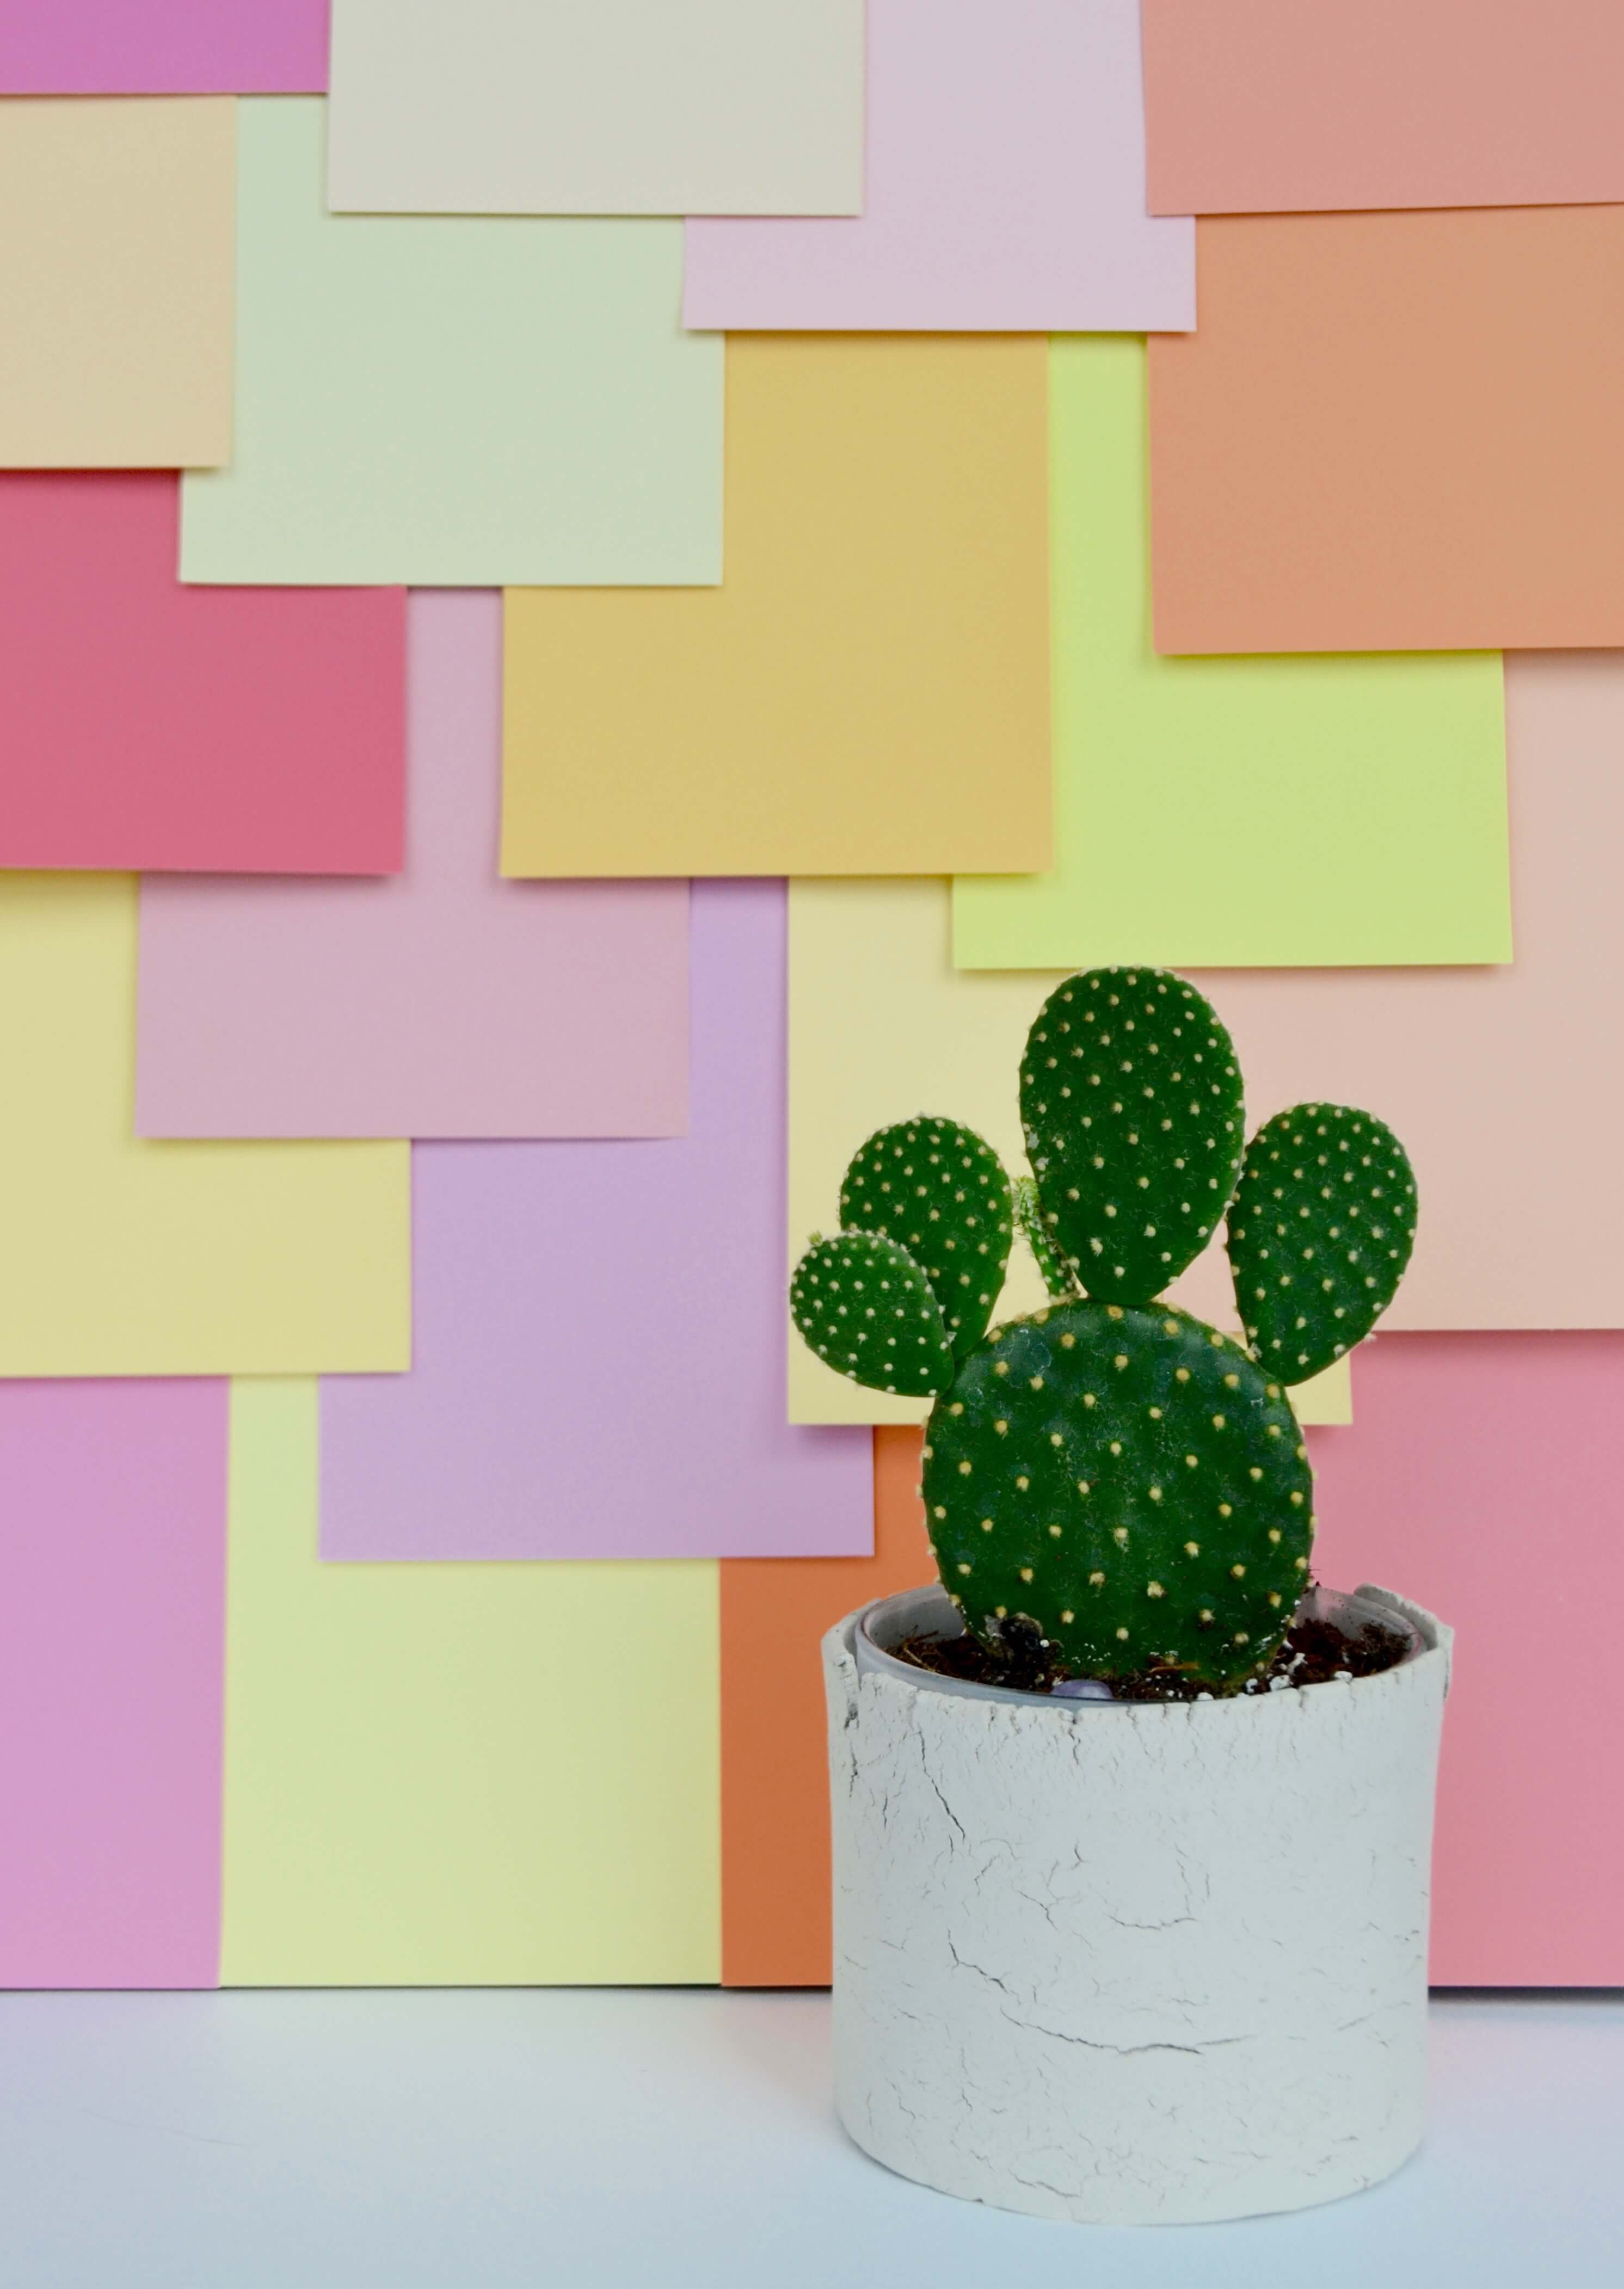 Finished Color Blocked Photo Backdrop with Cactus - Colorful Photo Backdrops